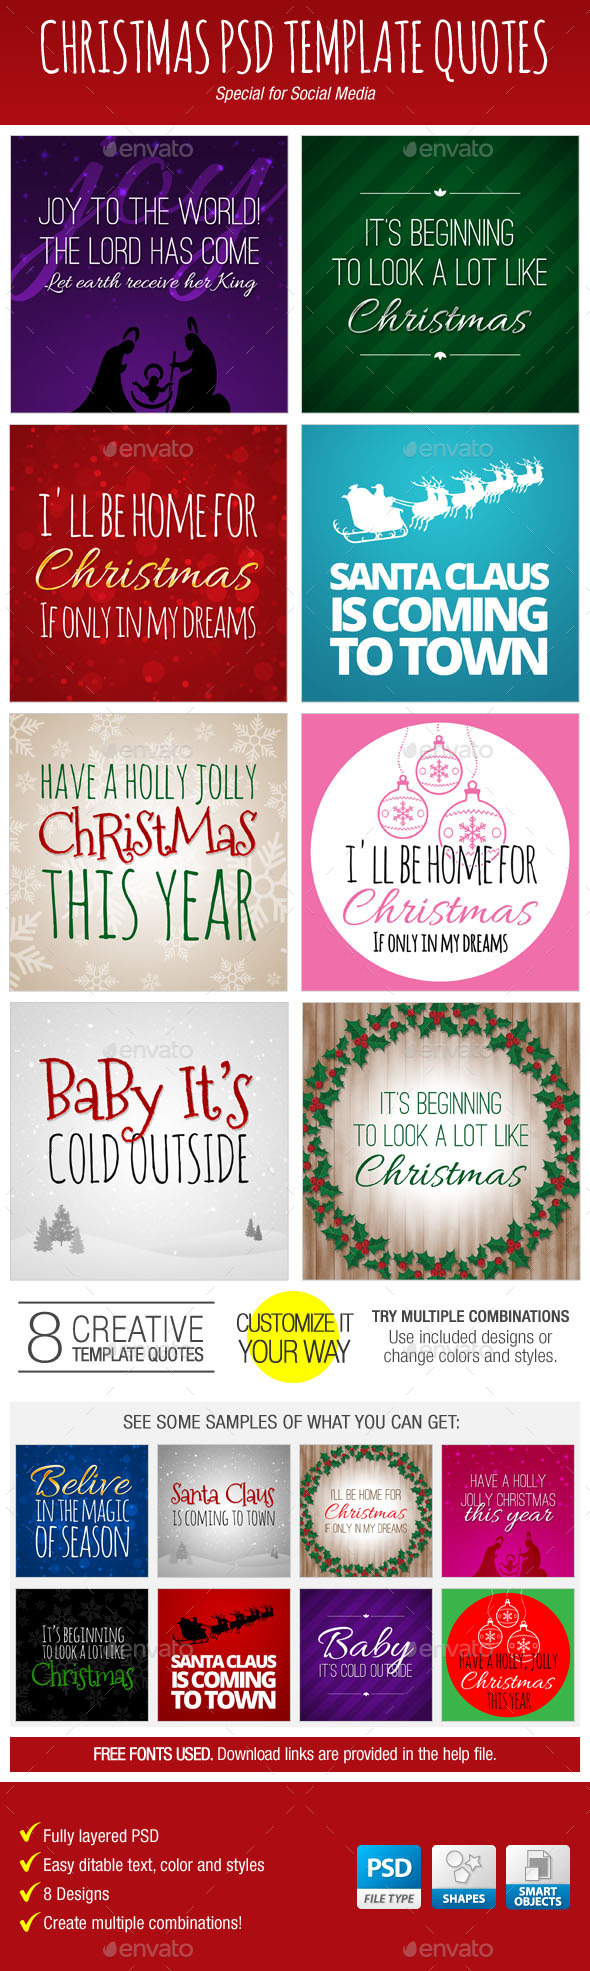 GraphicRiver Christmas PSD Template Quotes for Social Media 9584075